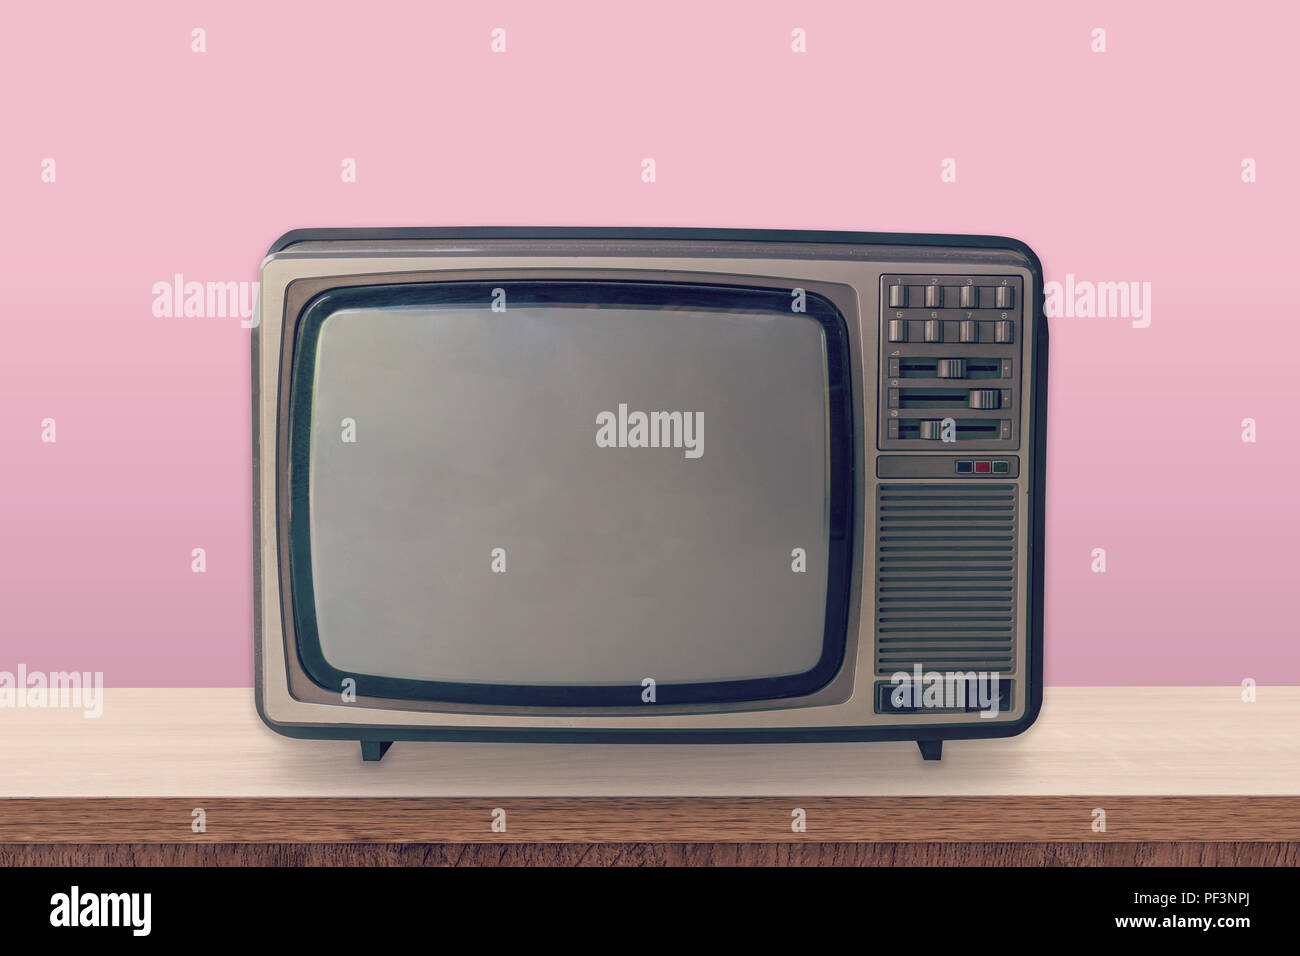 Vintage TV box on wooden table and pink pastel color background. - Stock Image